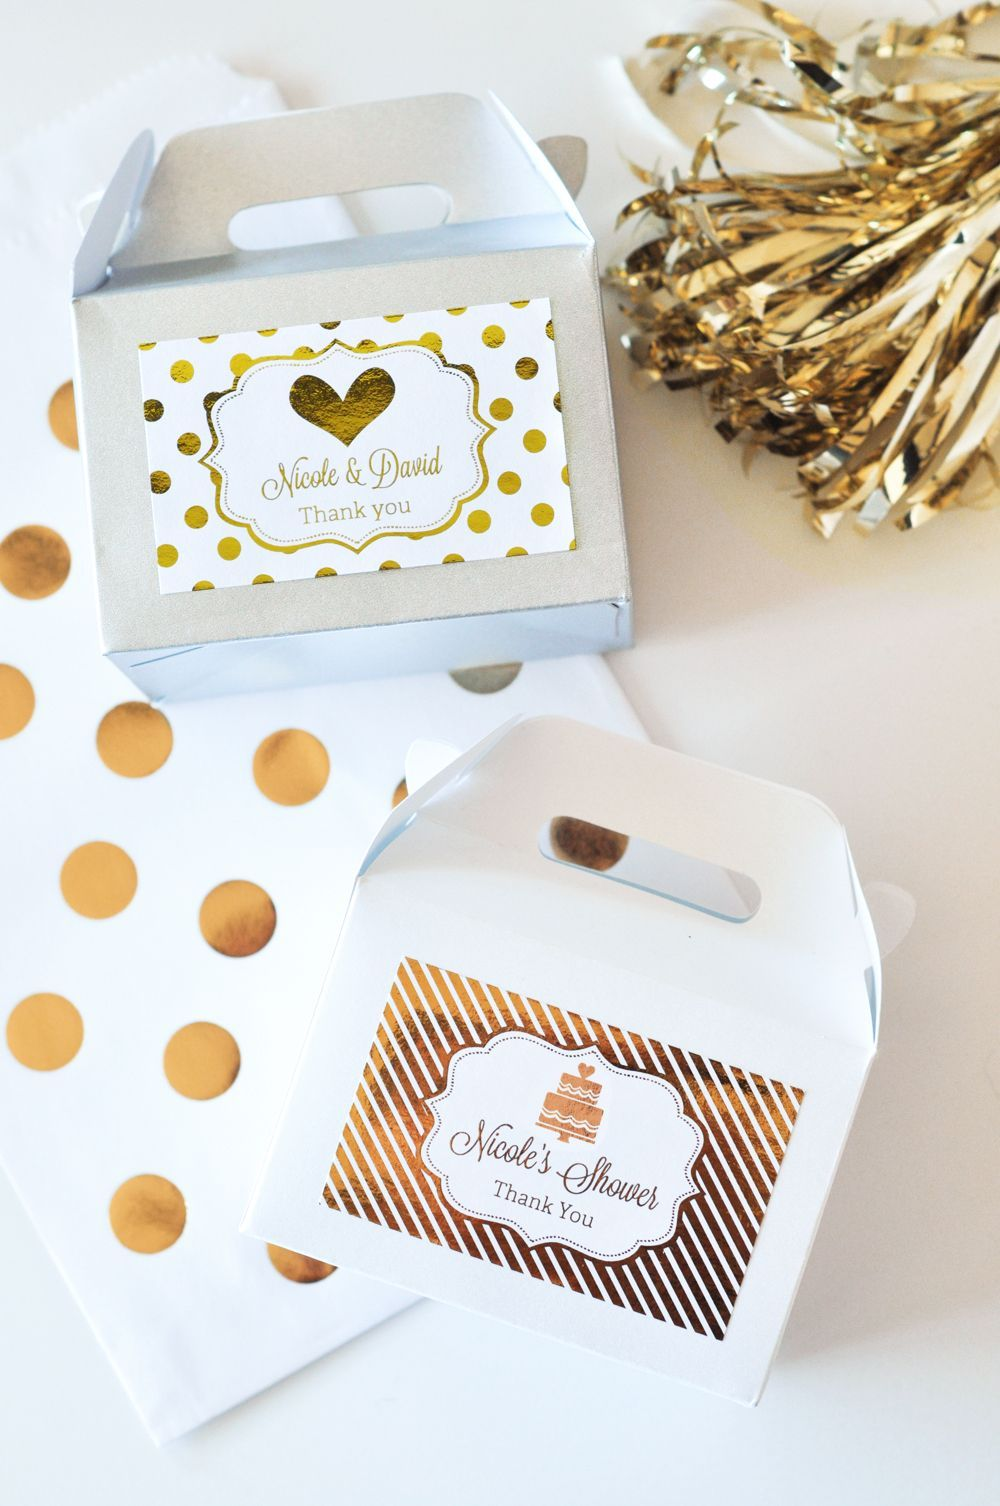 Awesome Personalized Wedding Favors Singapore Pattern - The Wedding ...